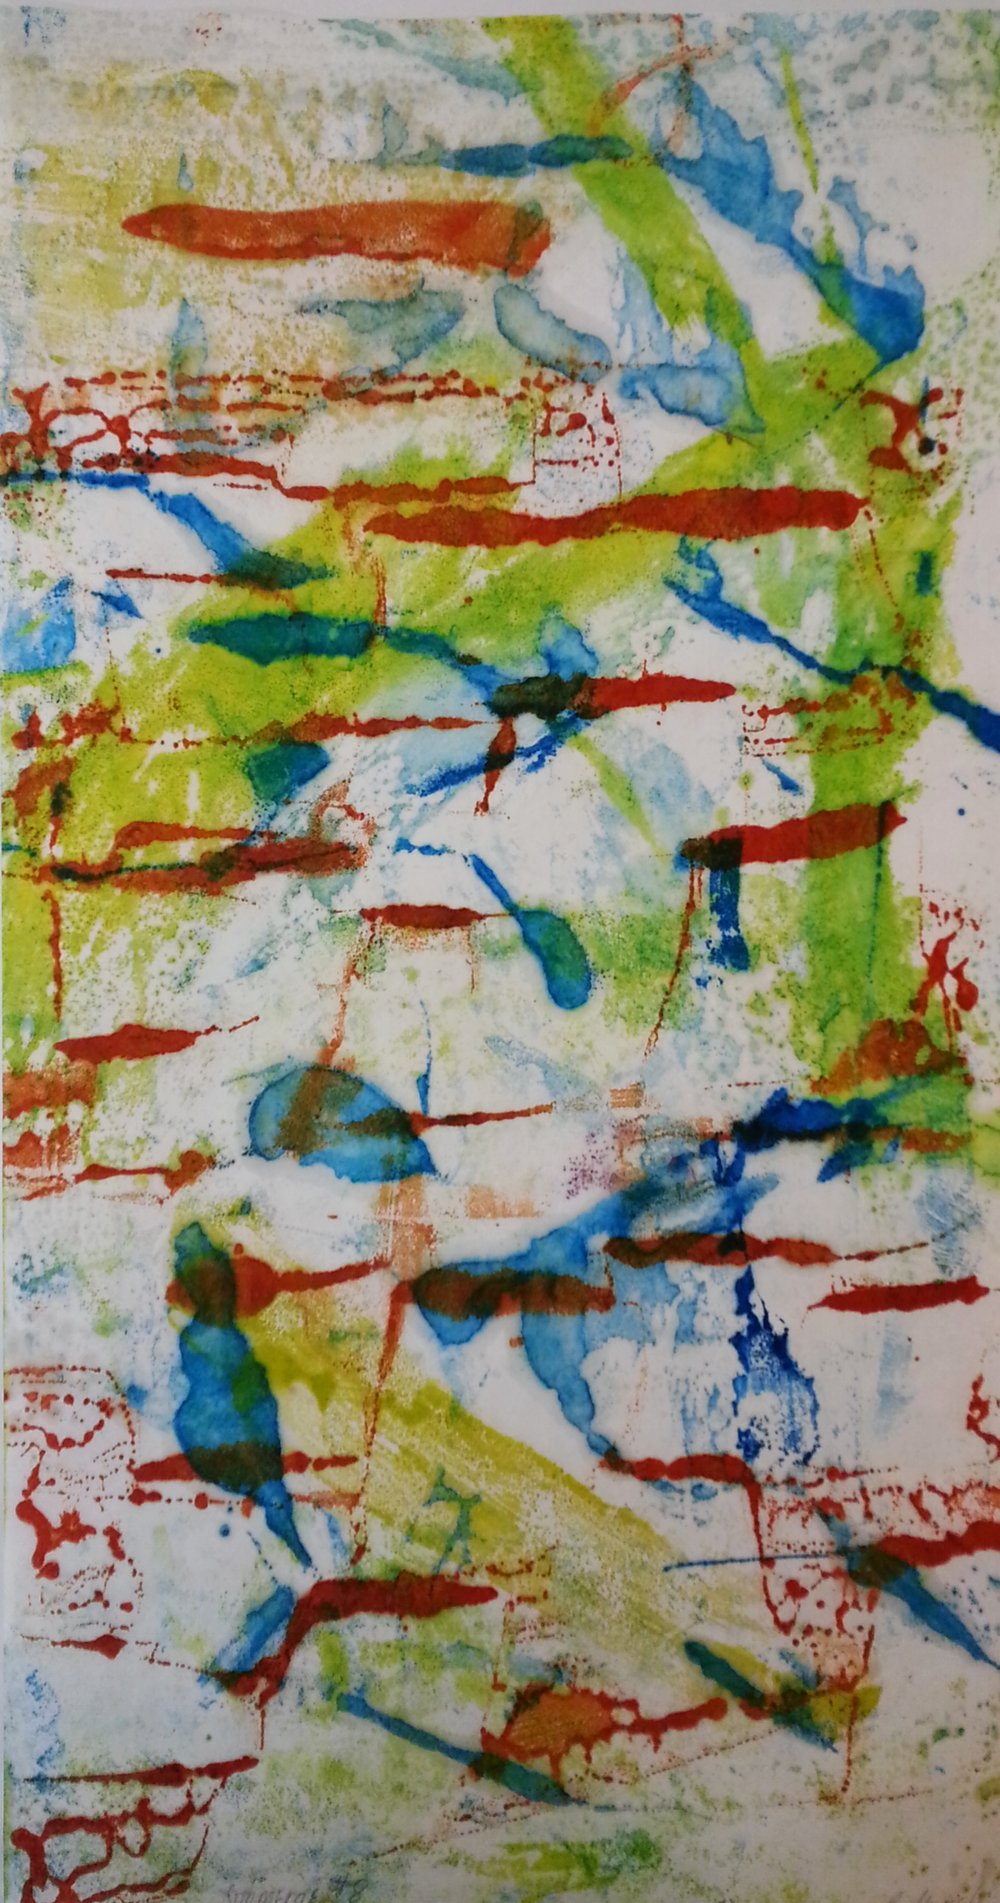 Submerge #8, 2015, Encaustic monotype, 20 x 11""